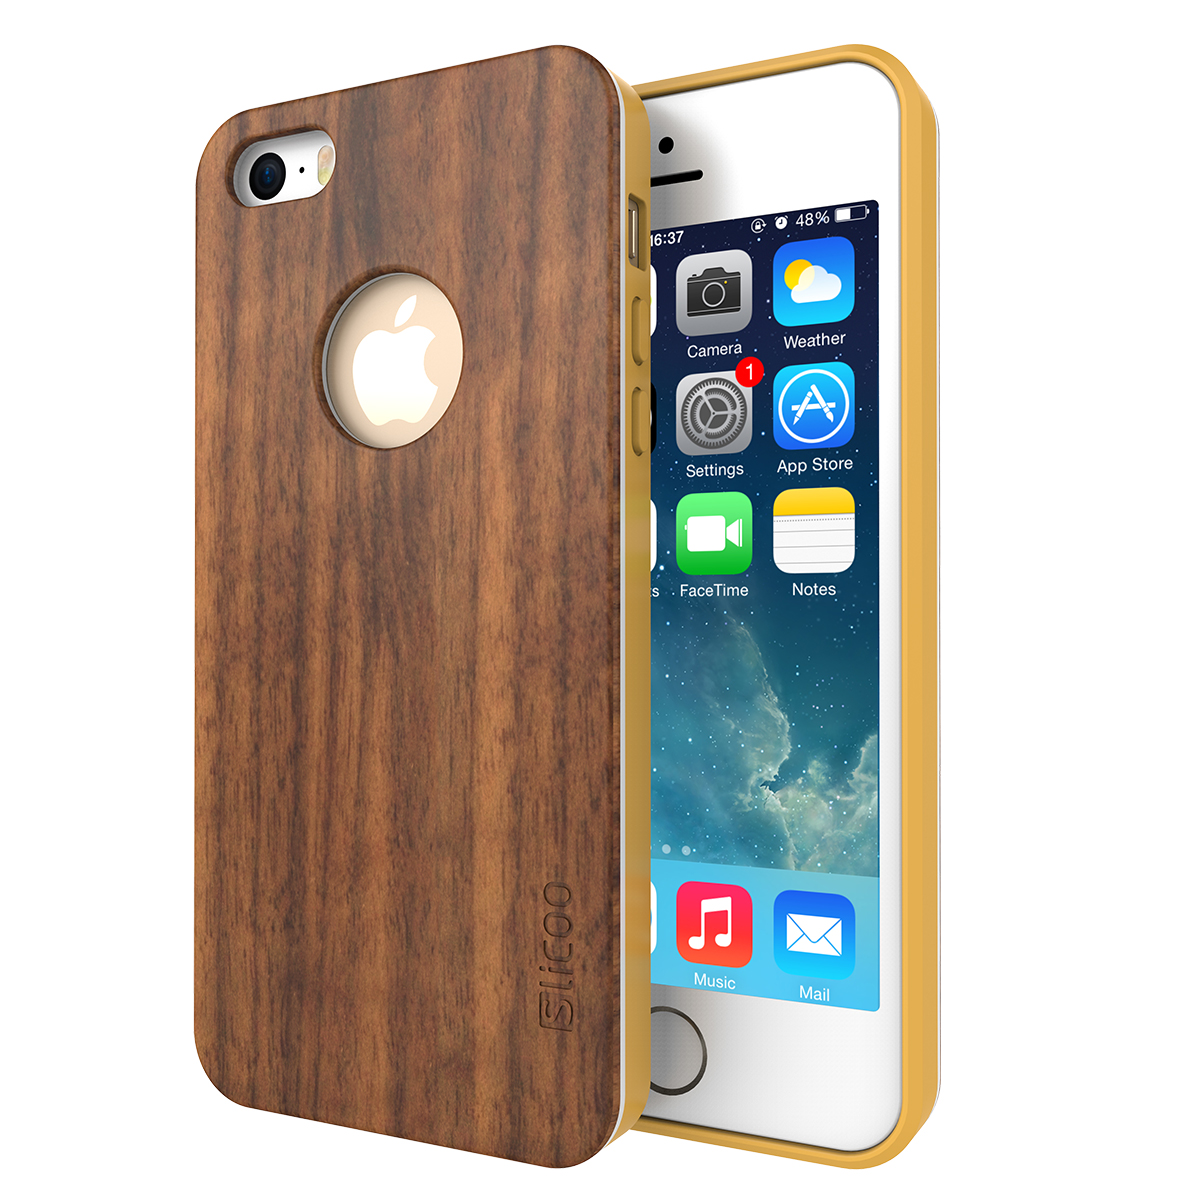 iPhone 5/5s Wood Case, Slicoo�� Nature Series Wood Slim Covering Case for iPhone 5/5s